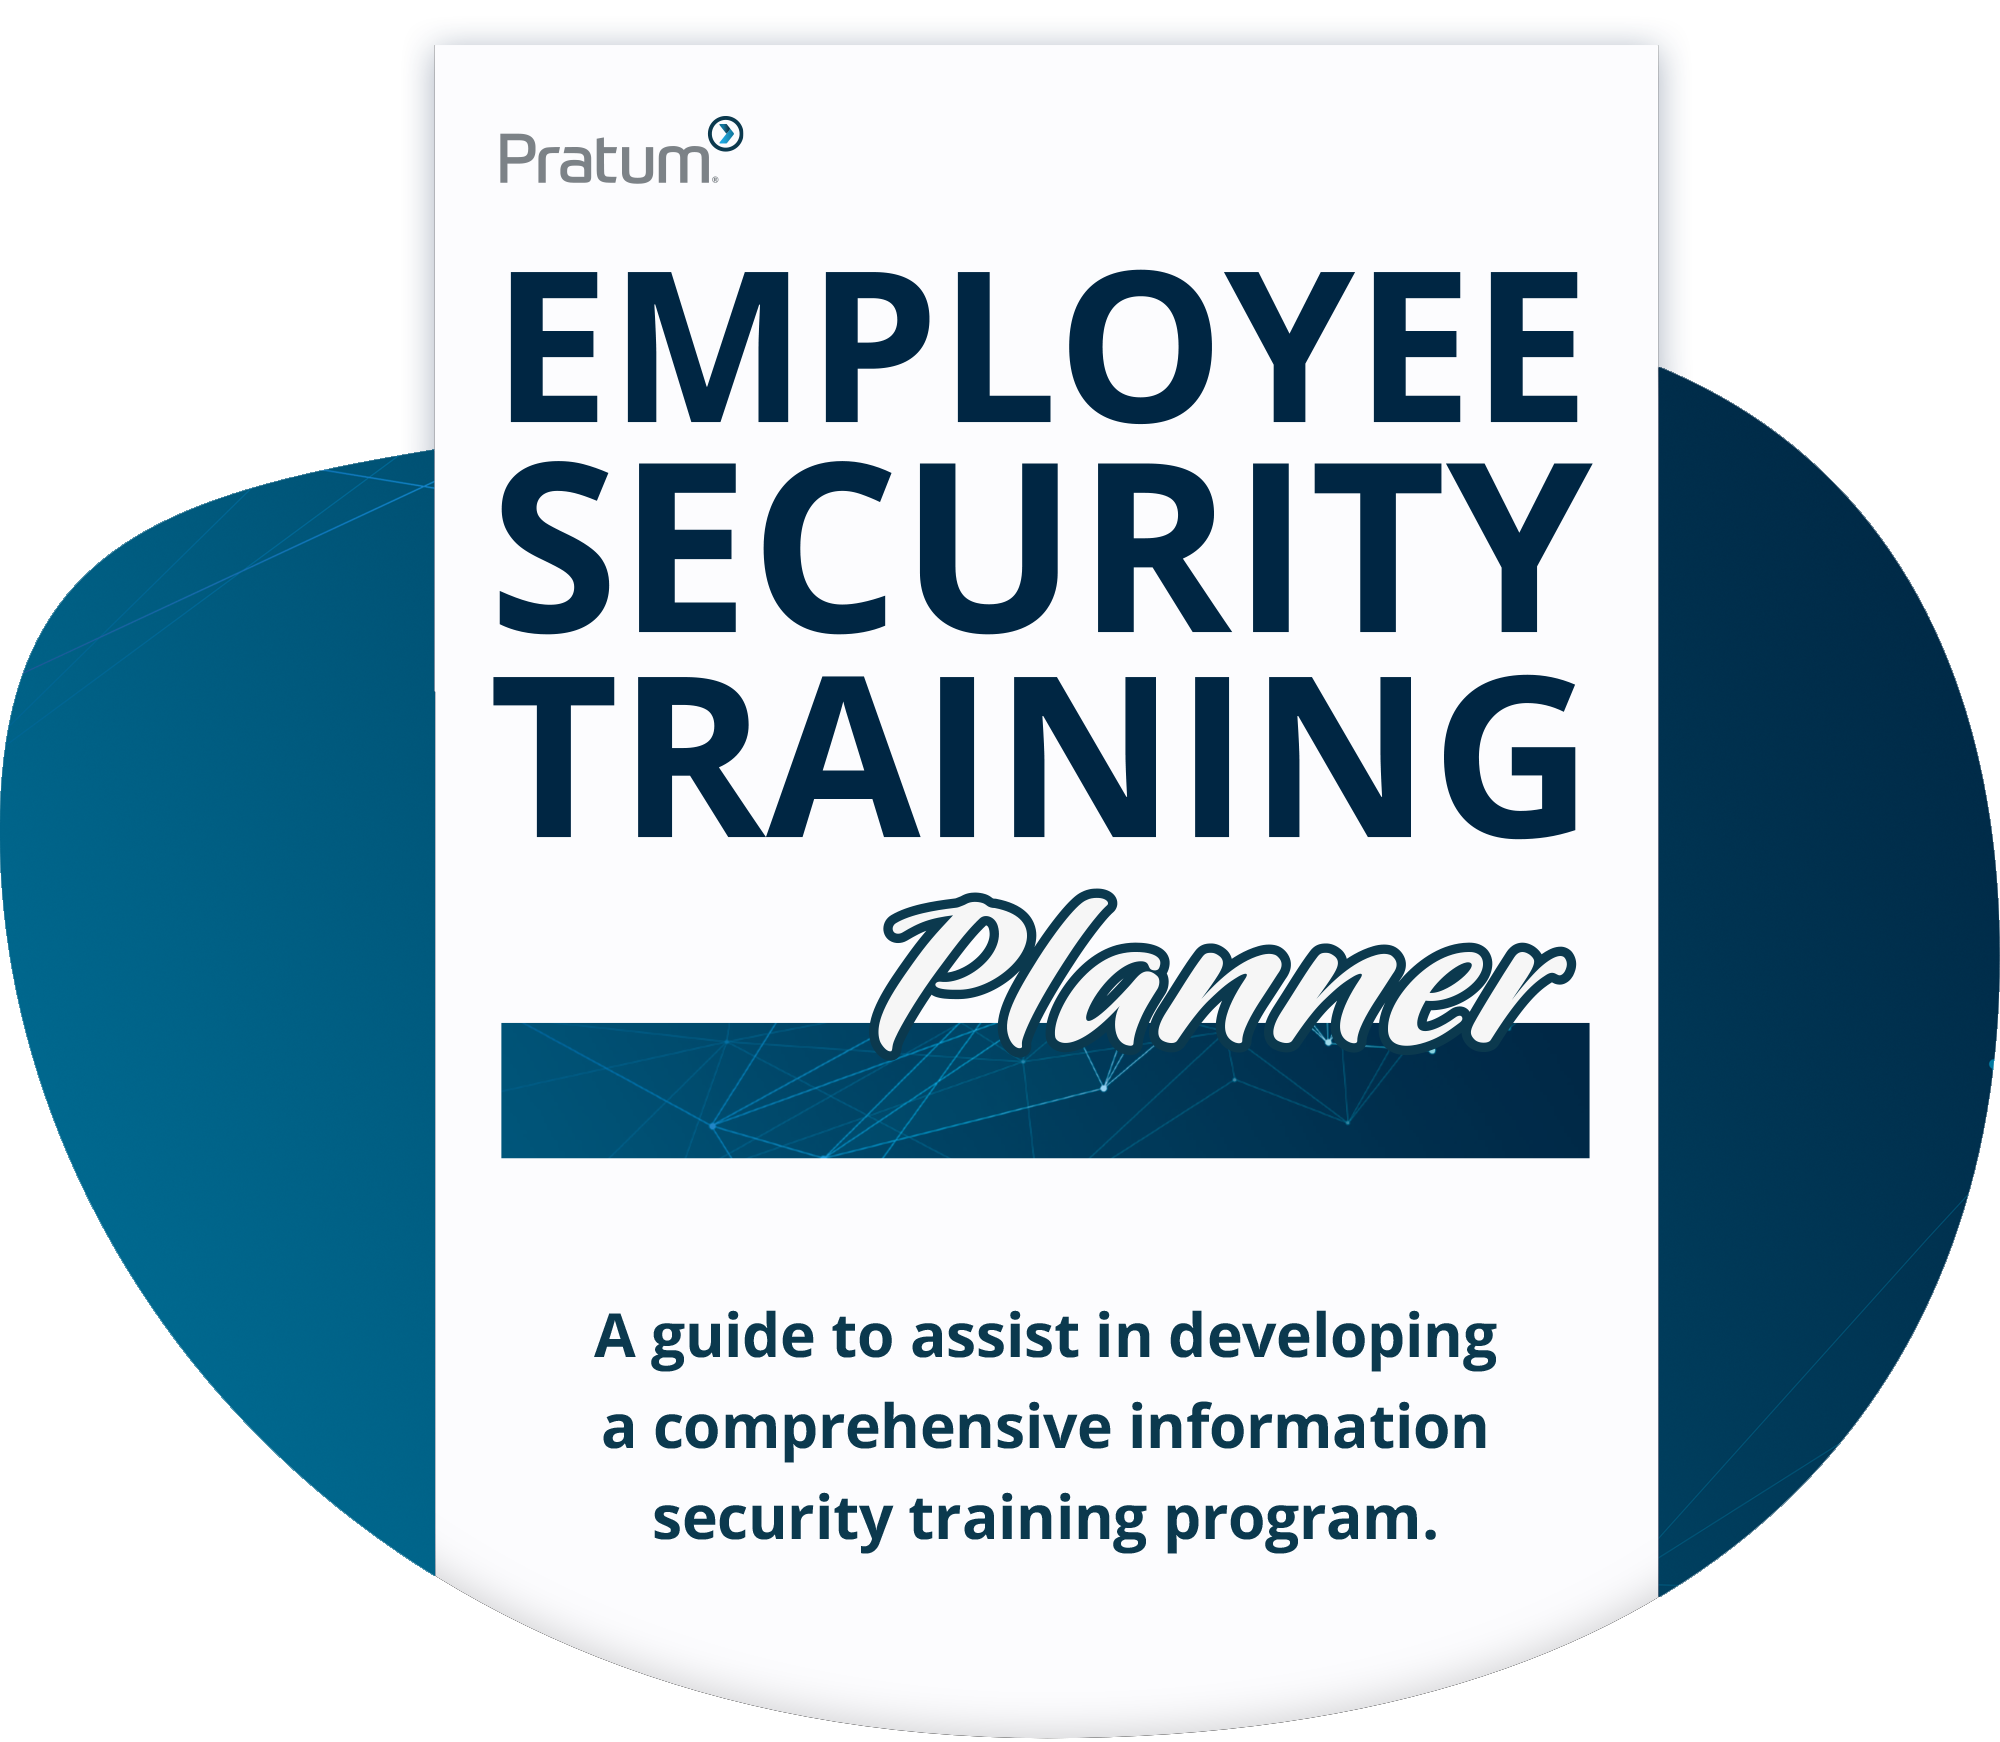 Employee Security Training Planner Landing Page_Pratum_20200204_PXX